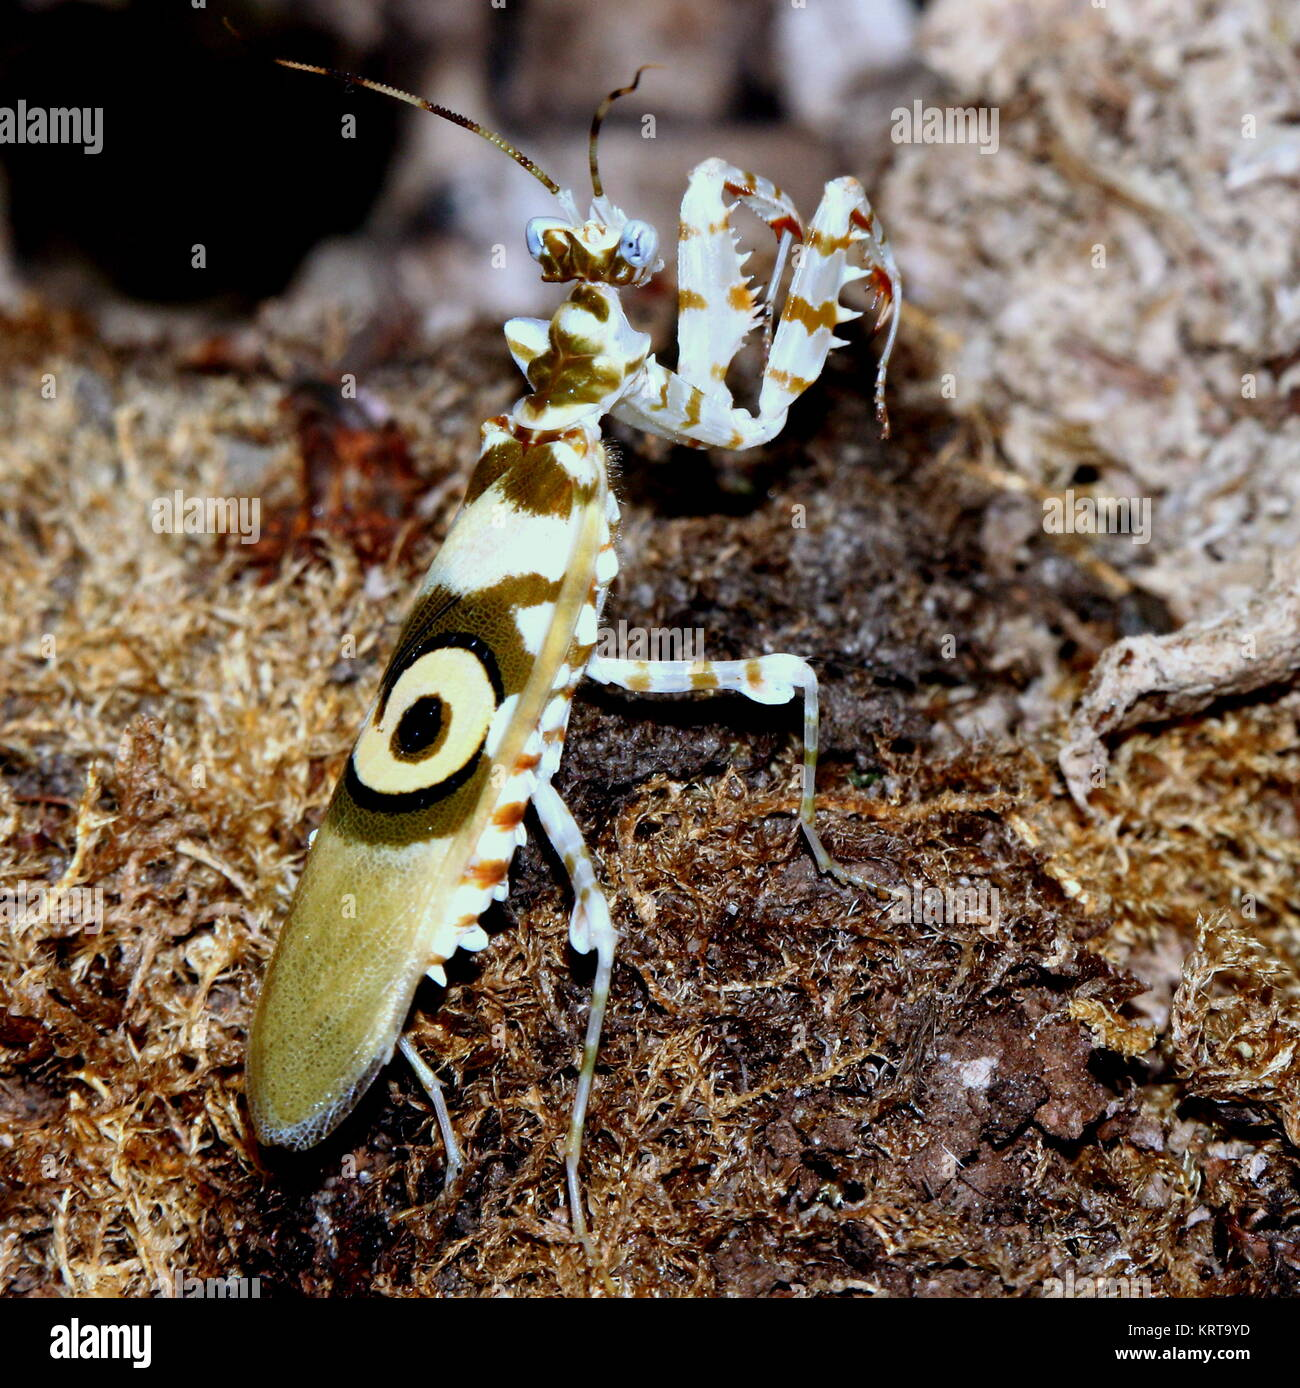 East African Spiny flower mantis (Pseudocreobotra wahlbergi) walking - Stock Image